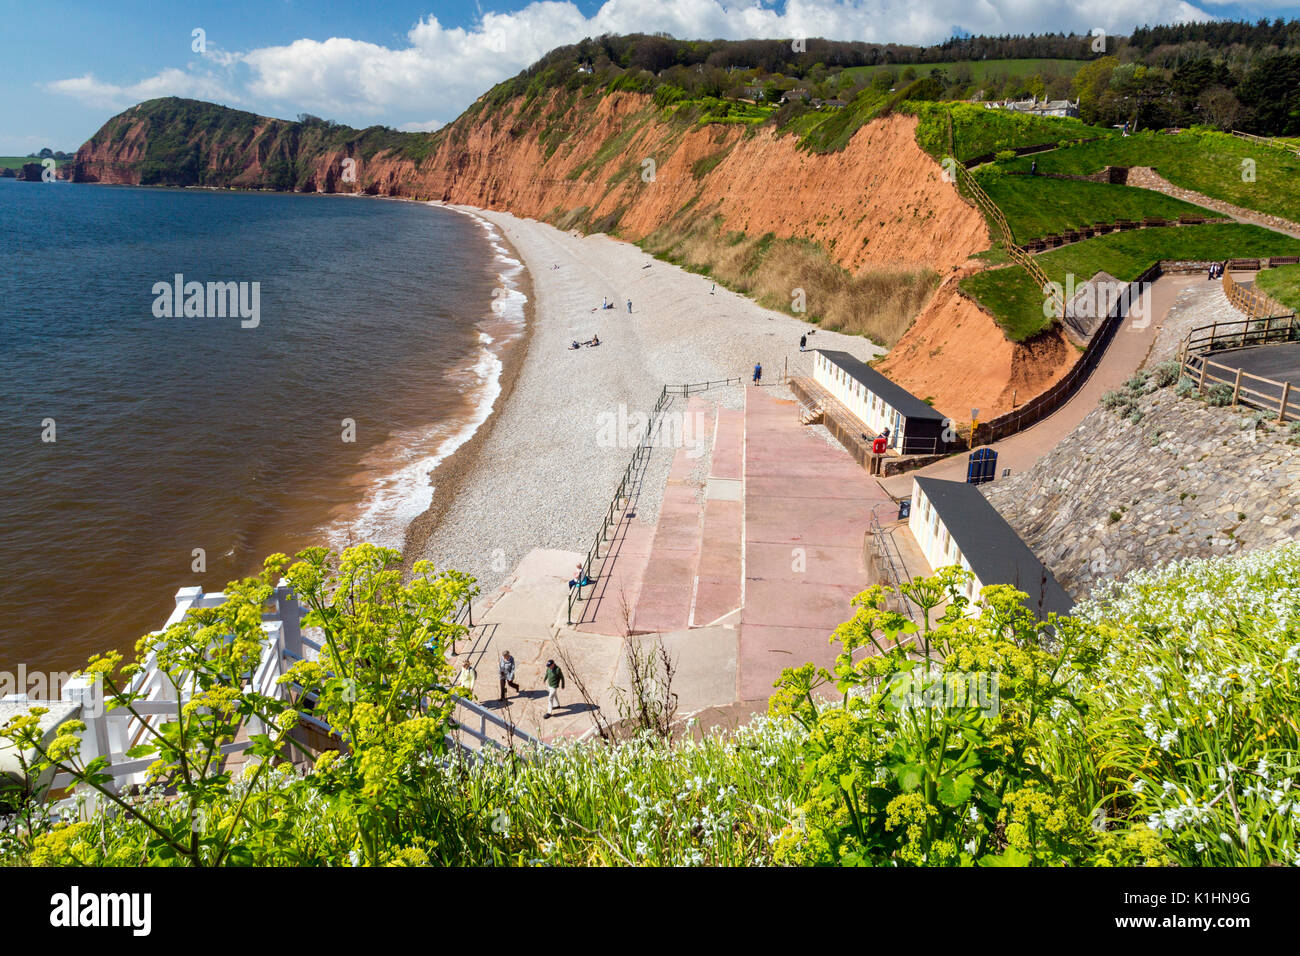 Looking west from Connaught Gardens in Sidmouth towards the towering sandstone cliffs on the Jurassic Coast, Devon, England, UK - Stock Image